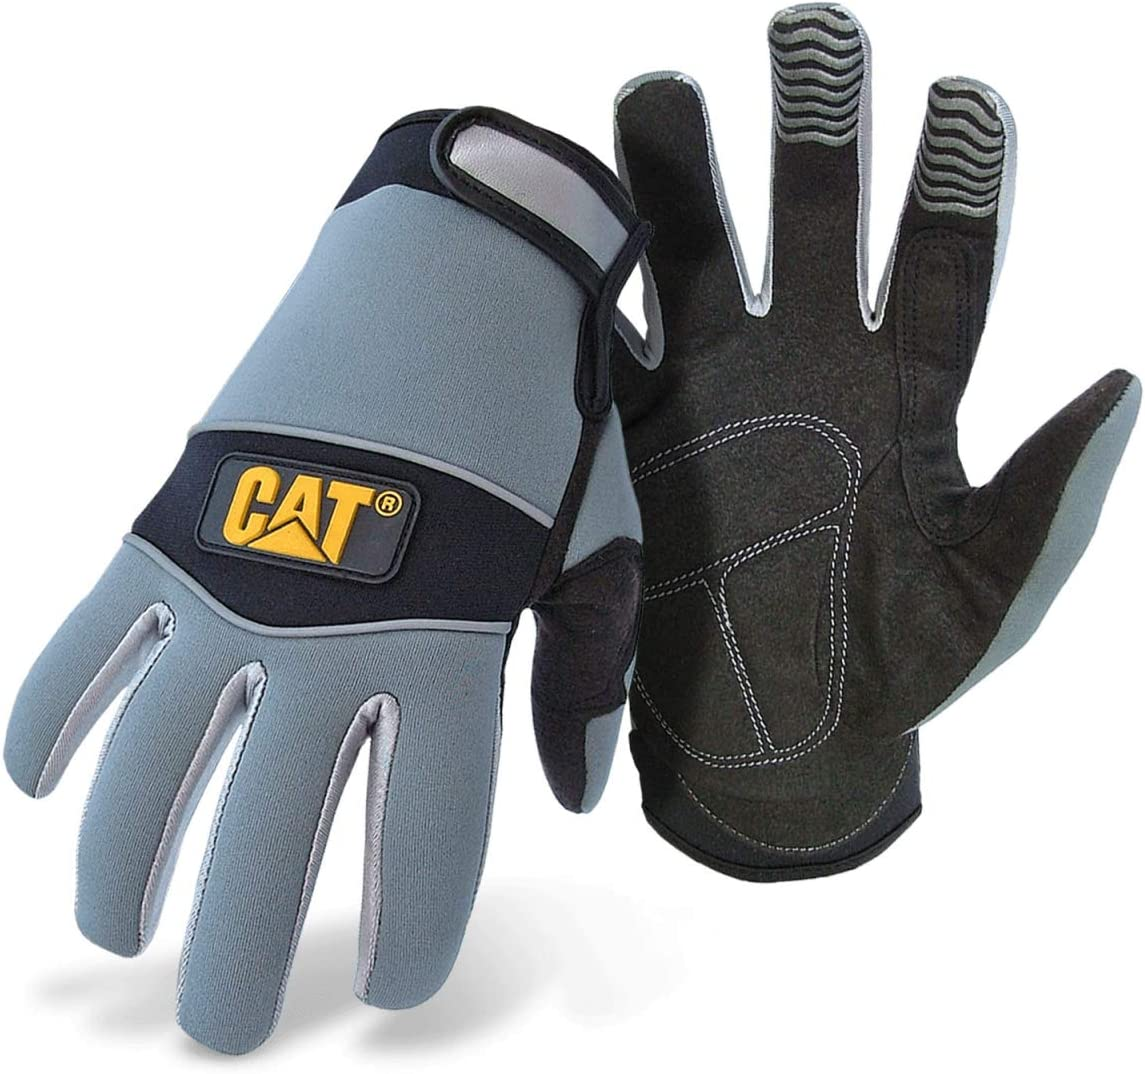 CAT Workwear Mens Workwear C12213 Neoprene Comfort Gloves